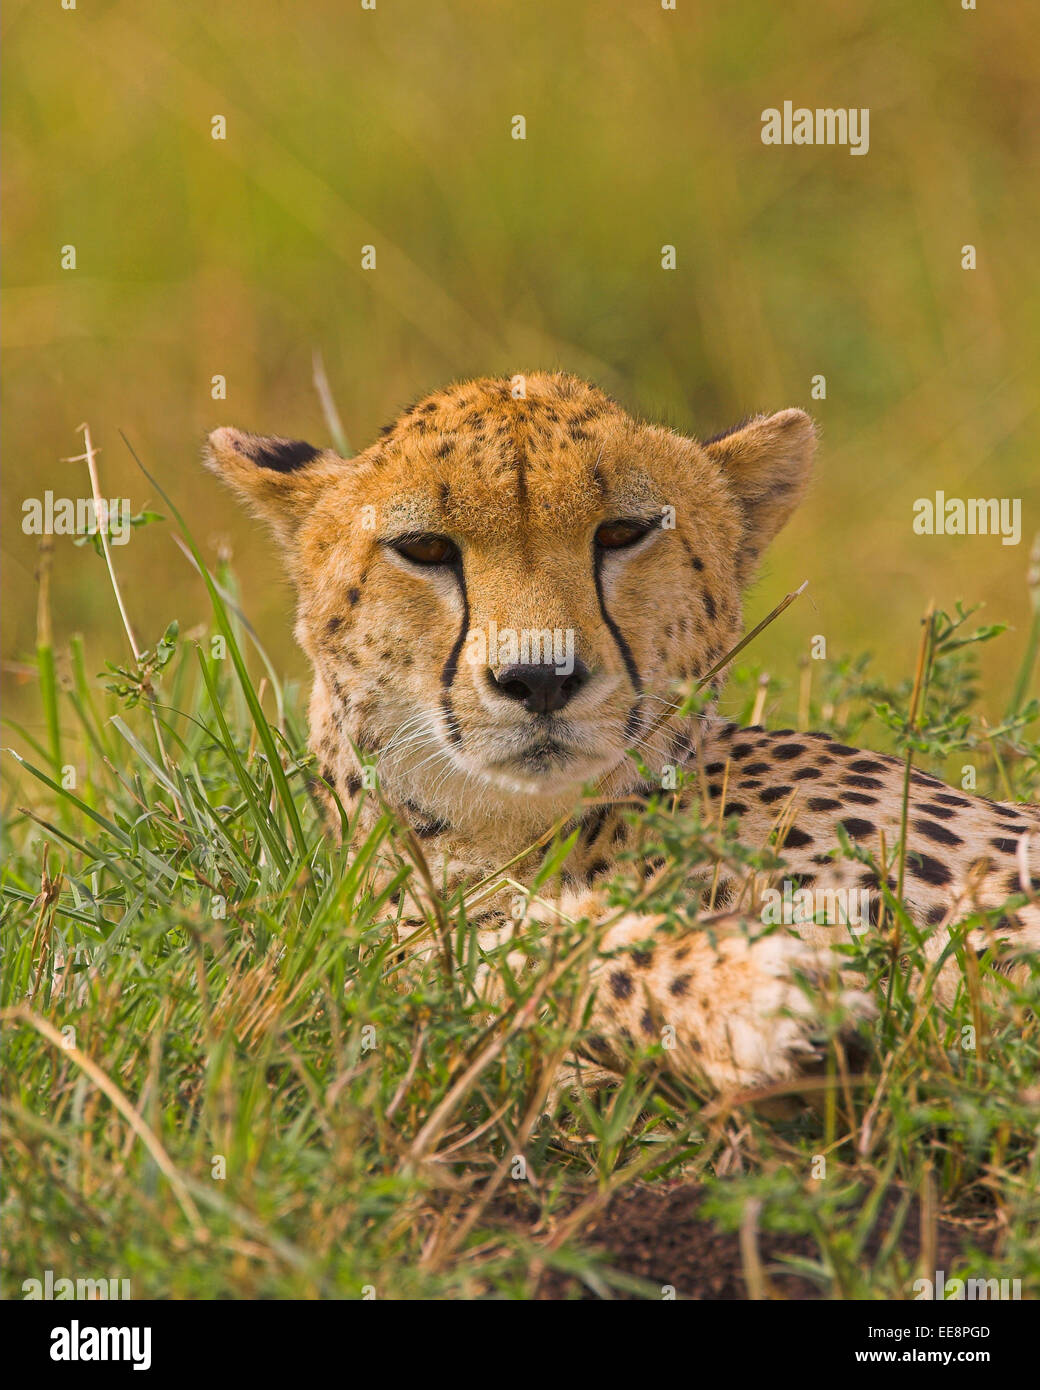 Cheeta - Stock Image